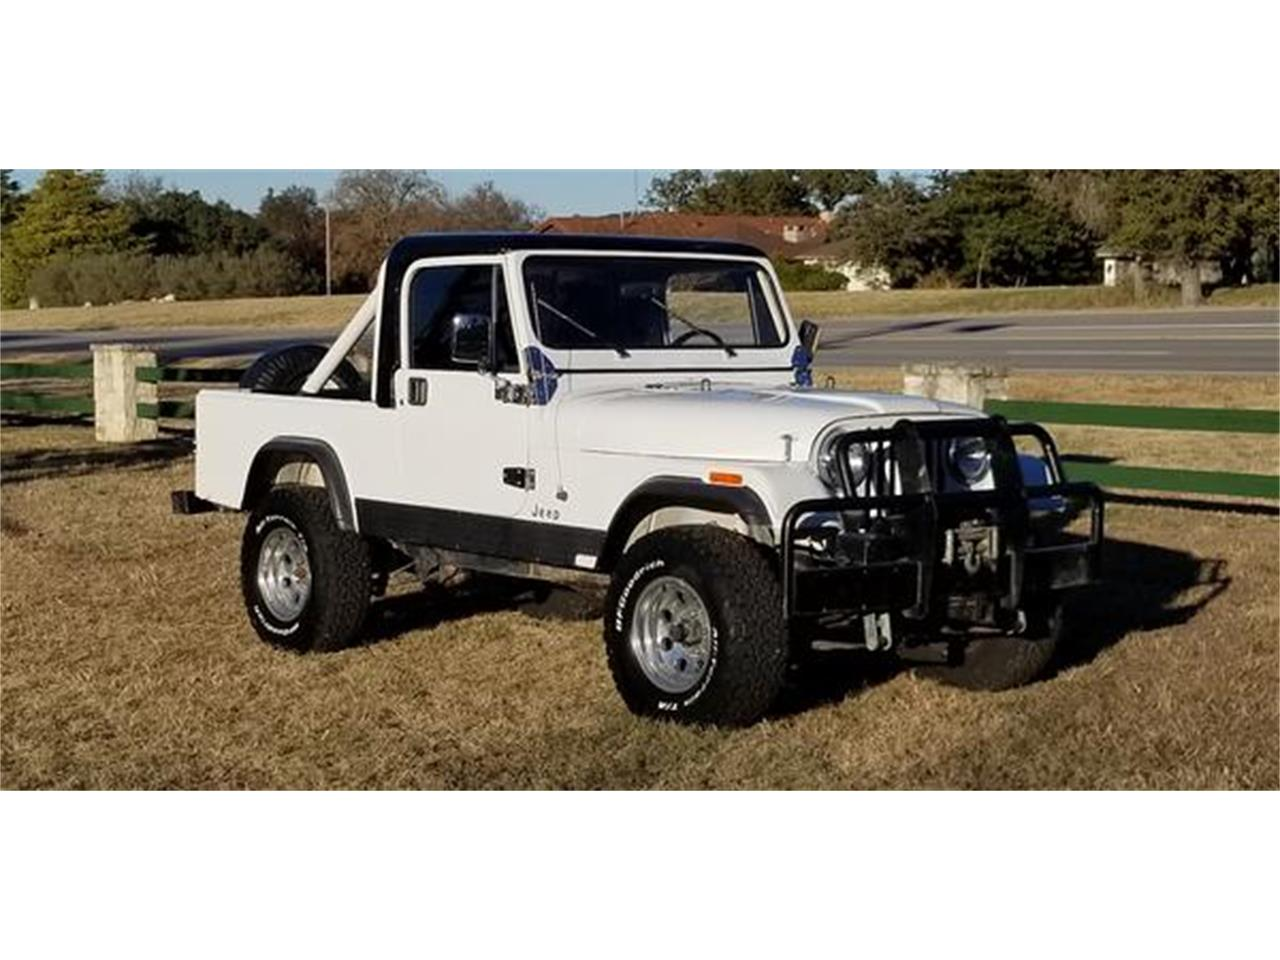 Large Picture of '84 Jeep CJ8 Scrambler located in Kerrville Texas - $22,000.00 - OV68